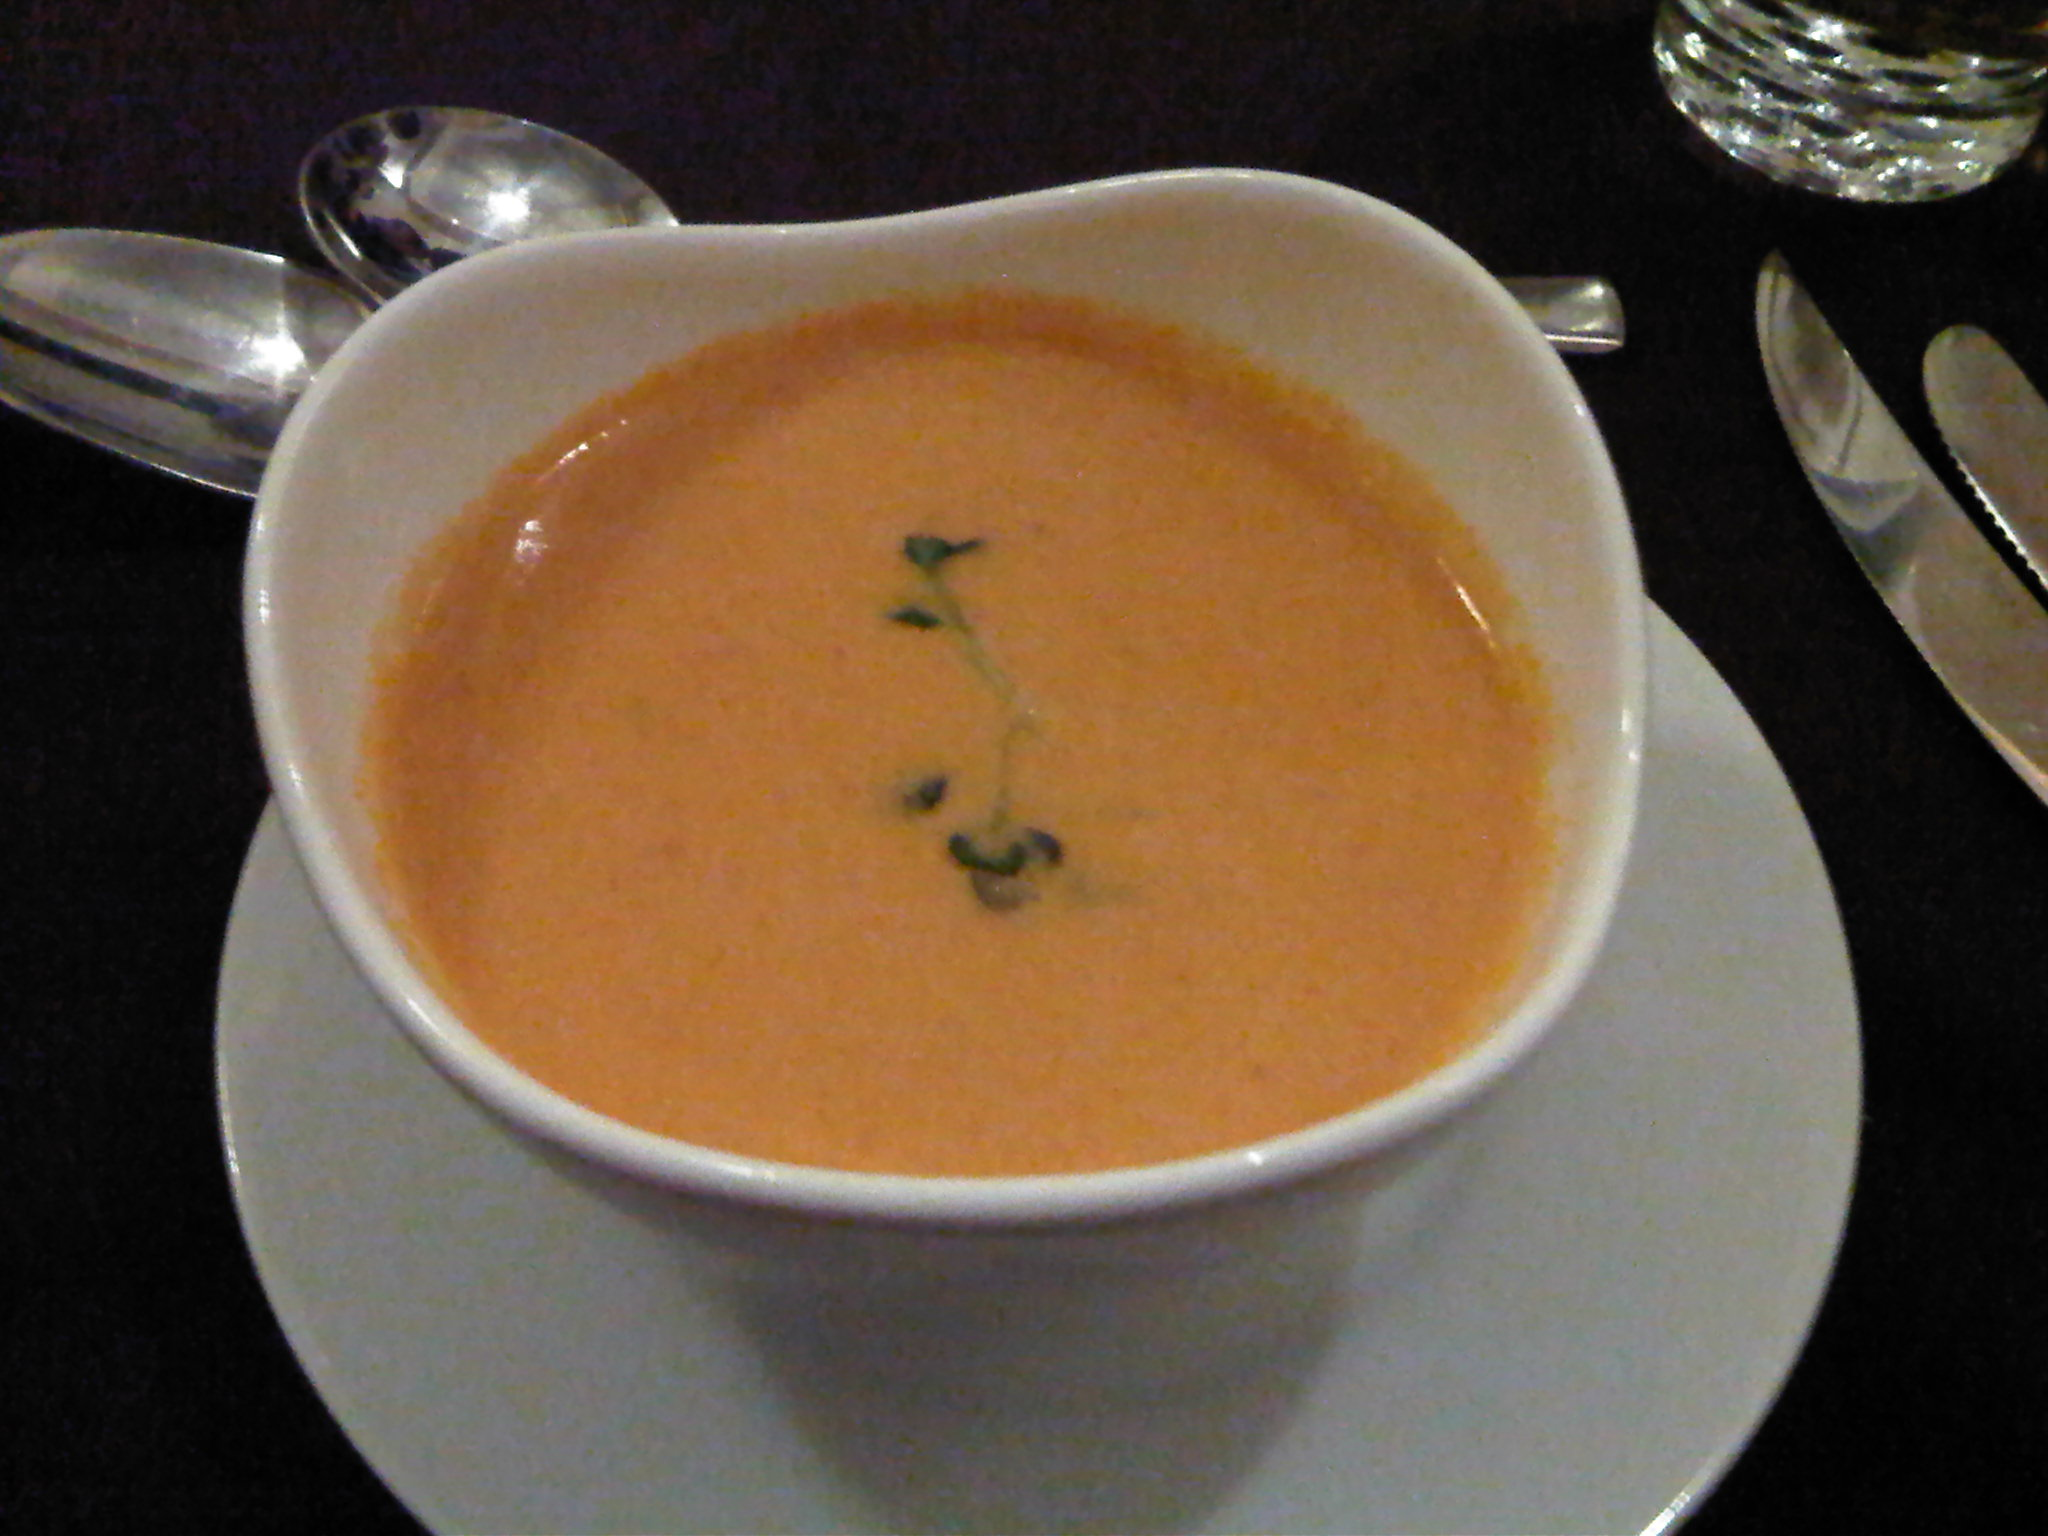 Soup of the Day - Tomato and Pepper Puree Soup?